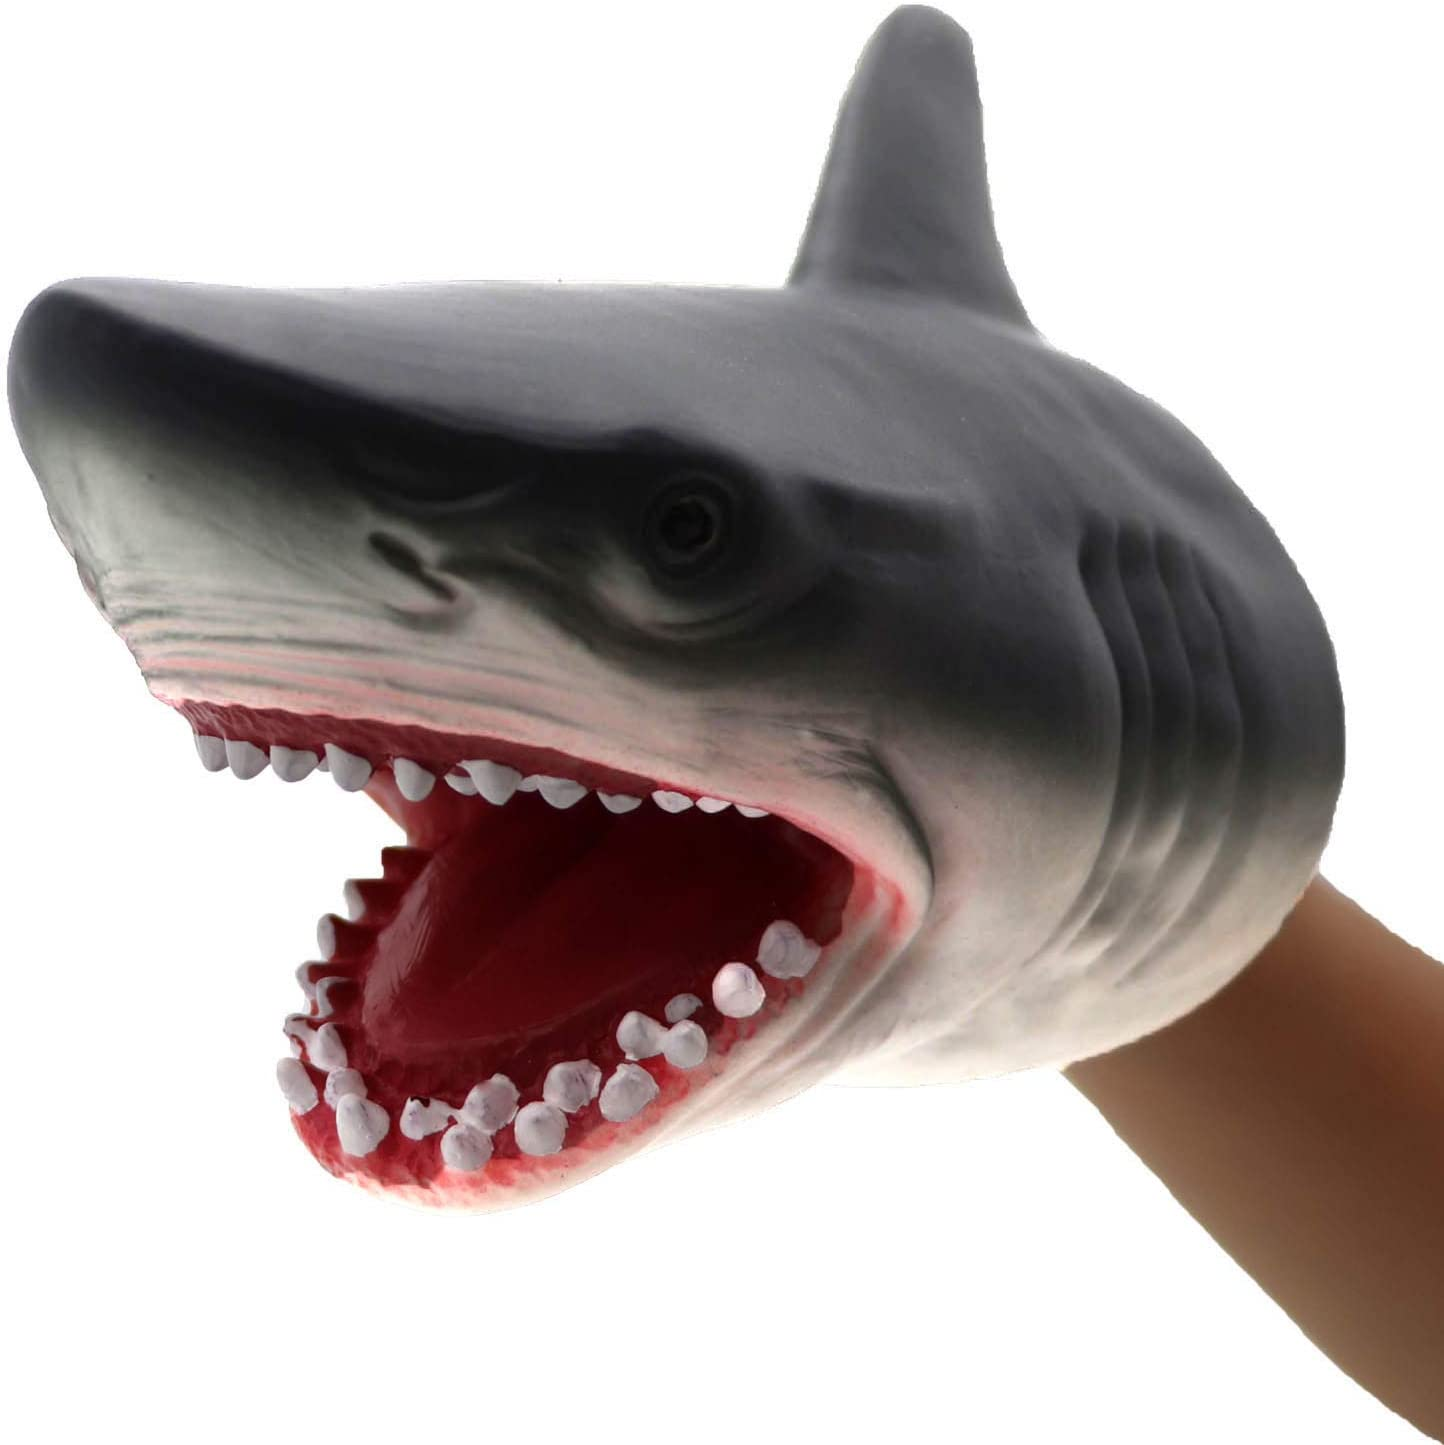 ifkoo Shark Hand Puppet Realistic Soft Rubber Jaws Dolphin Sea Animal Head Party Plush Toy for Adult and Kids (Shark)